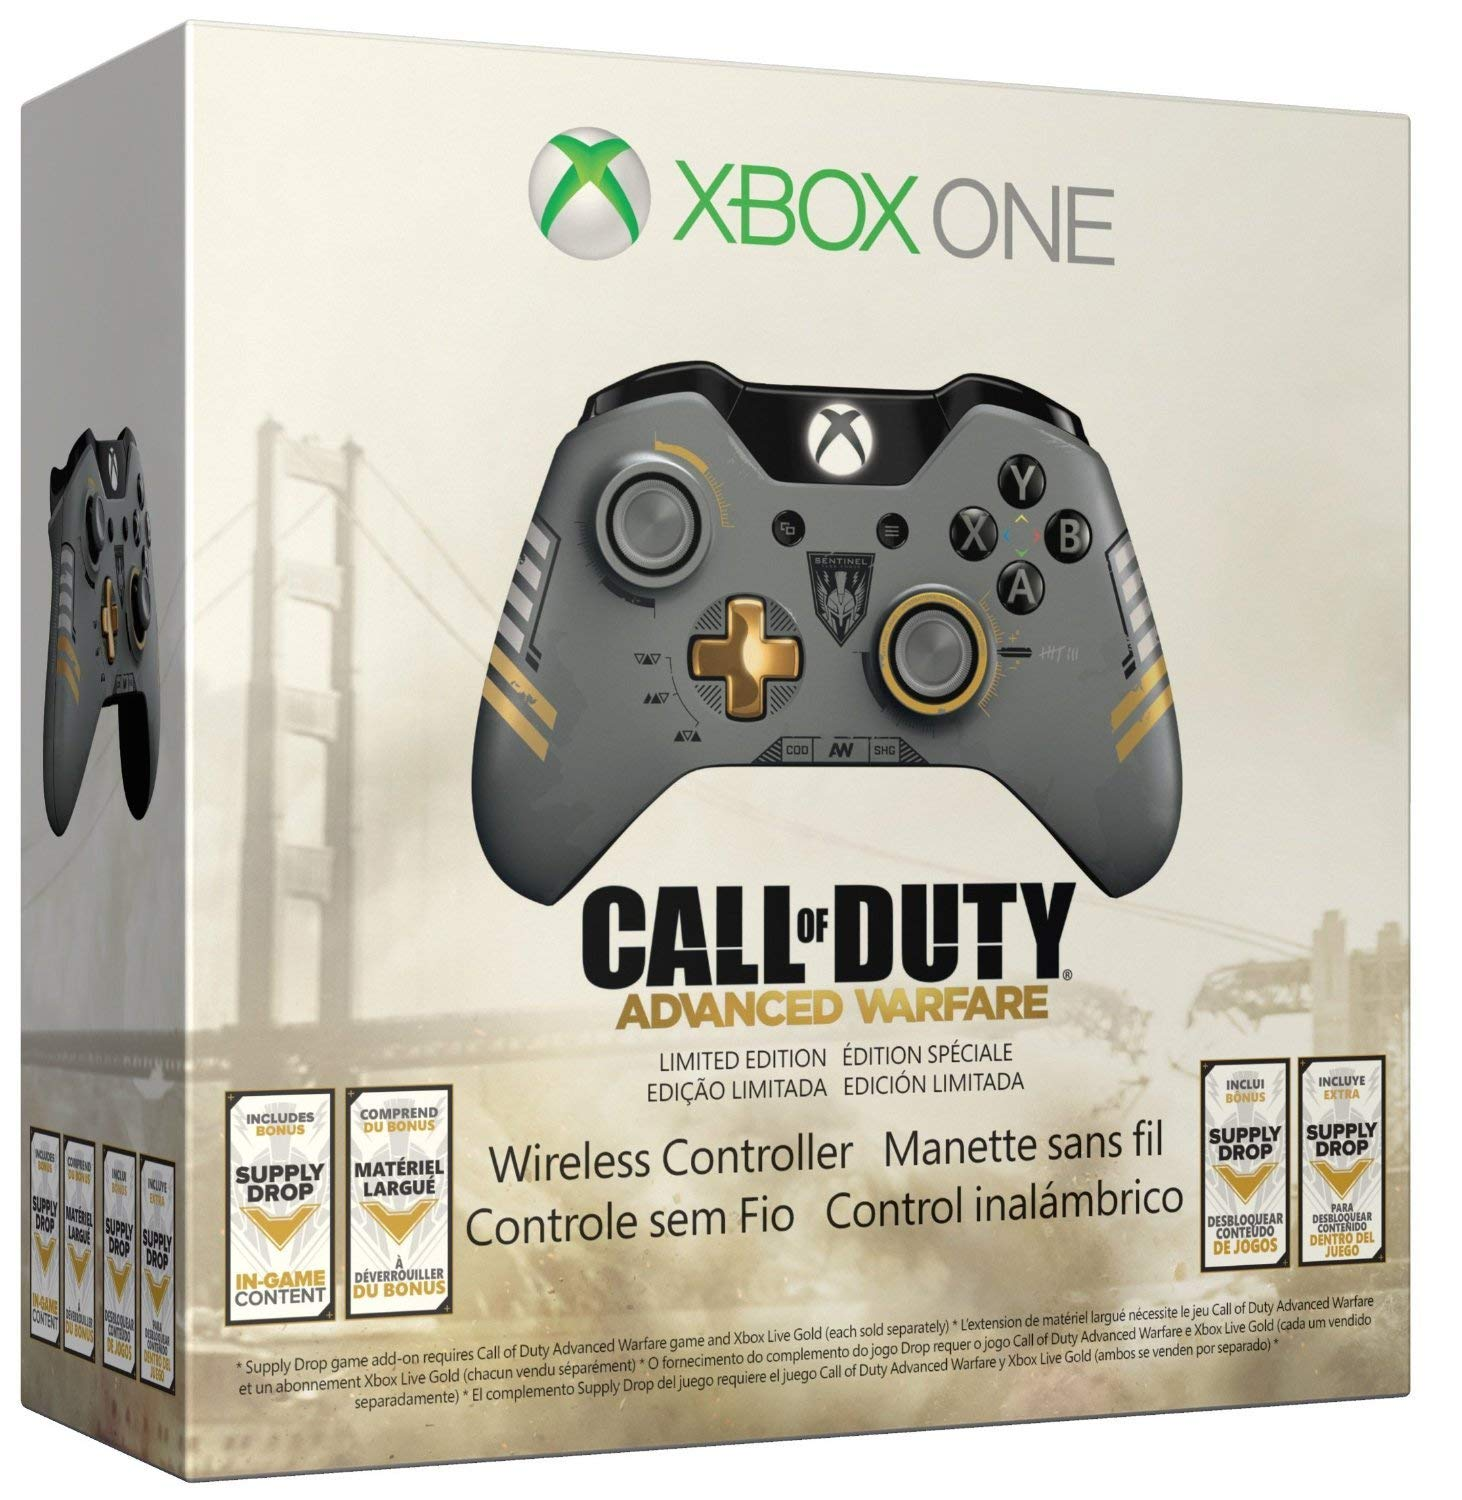 Xbox One Wireless Controller Call of Duty Advanced Warfare Limited Edition